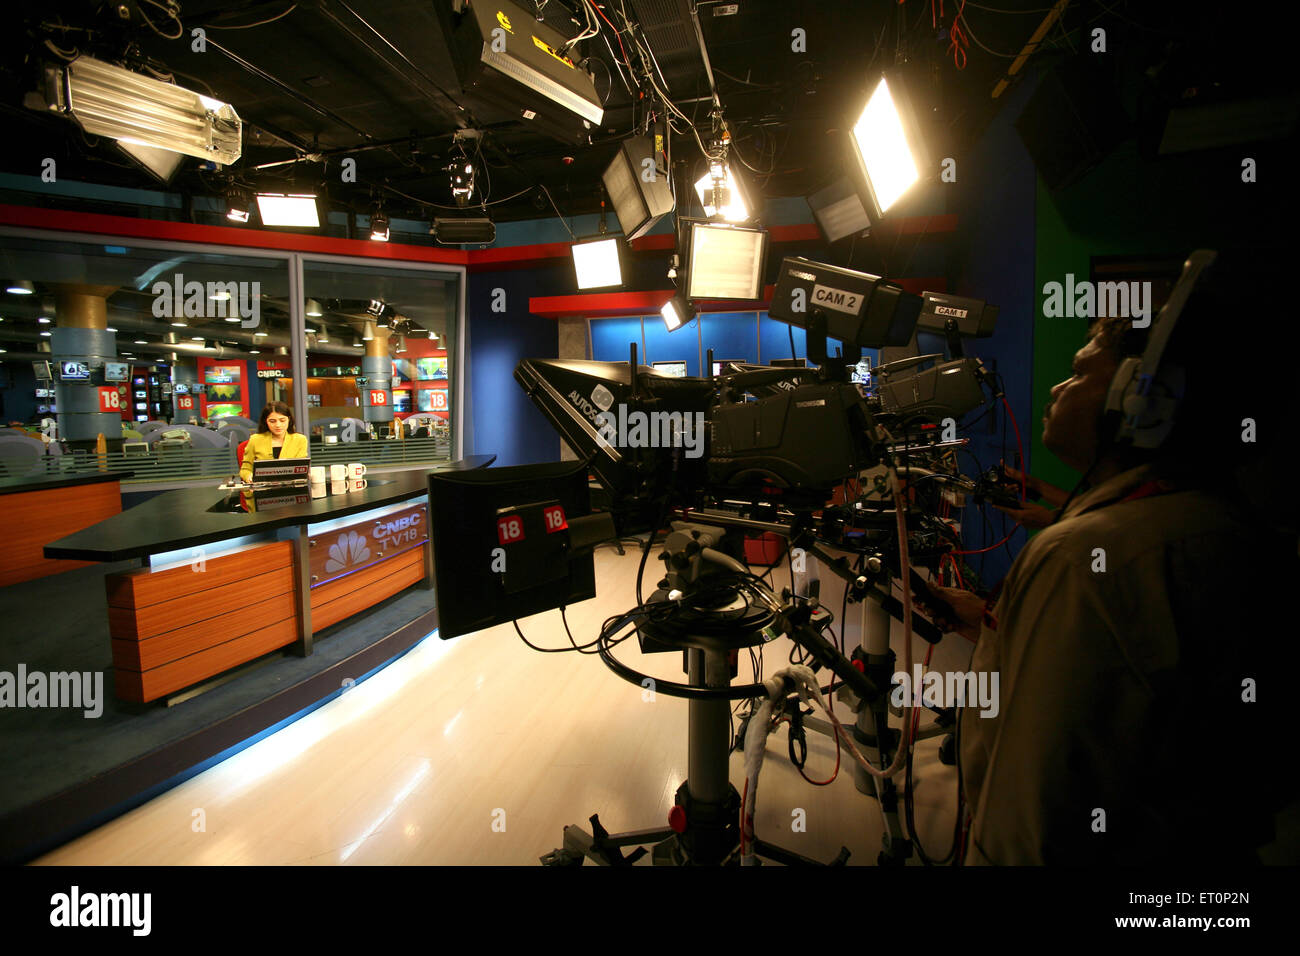 Cameraman shooting anchor with news in newsroom of cnbc channel ; Bombay Mumbai ; Maharashtra ; India - Stock Image